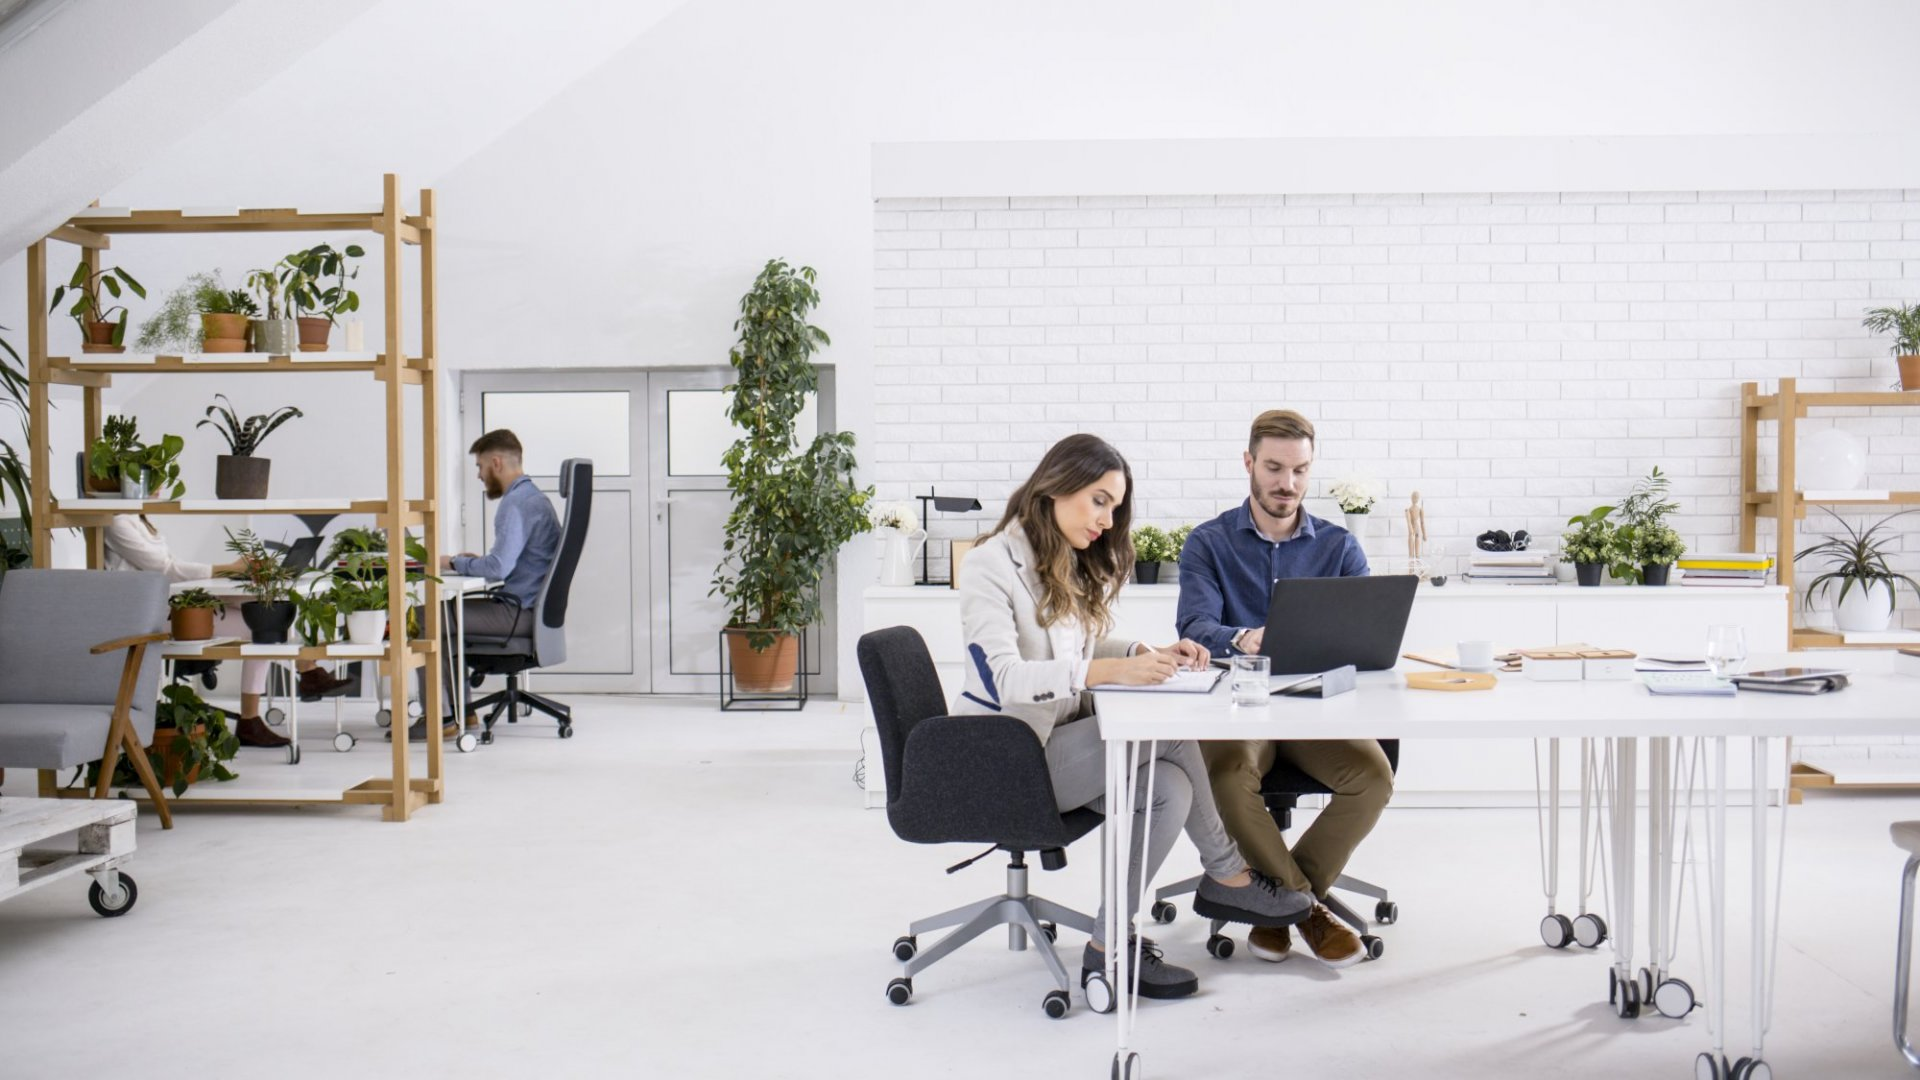 Stuck With An Open Office Plan? Here's How to Make It Less Awful